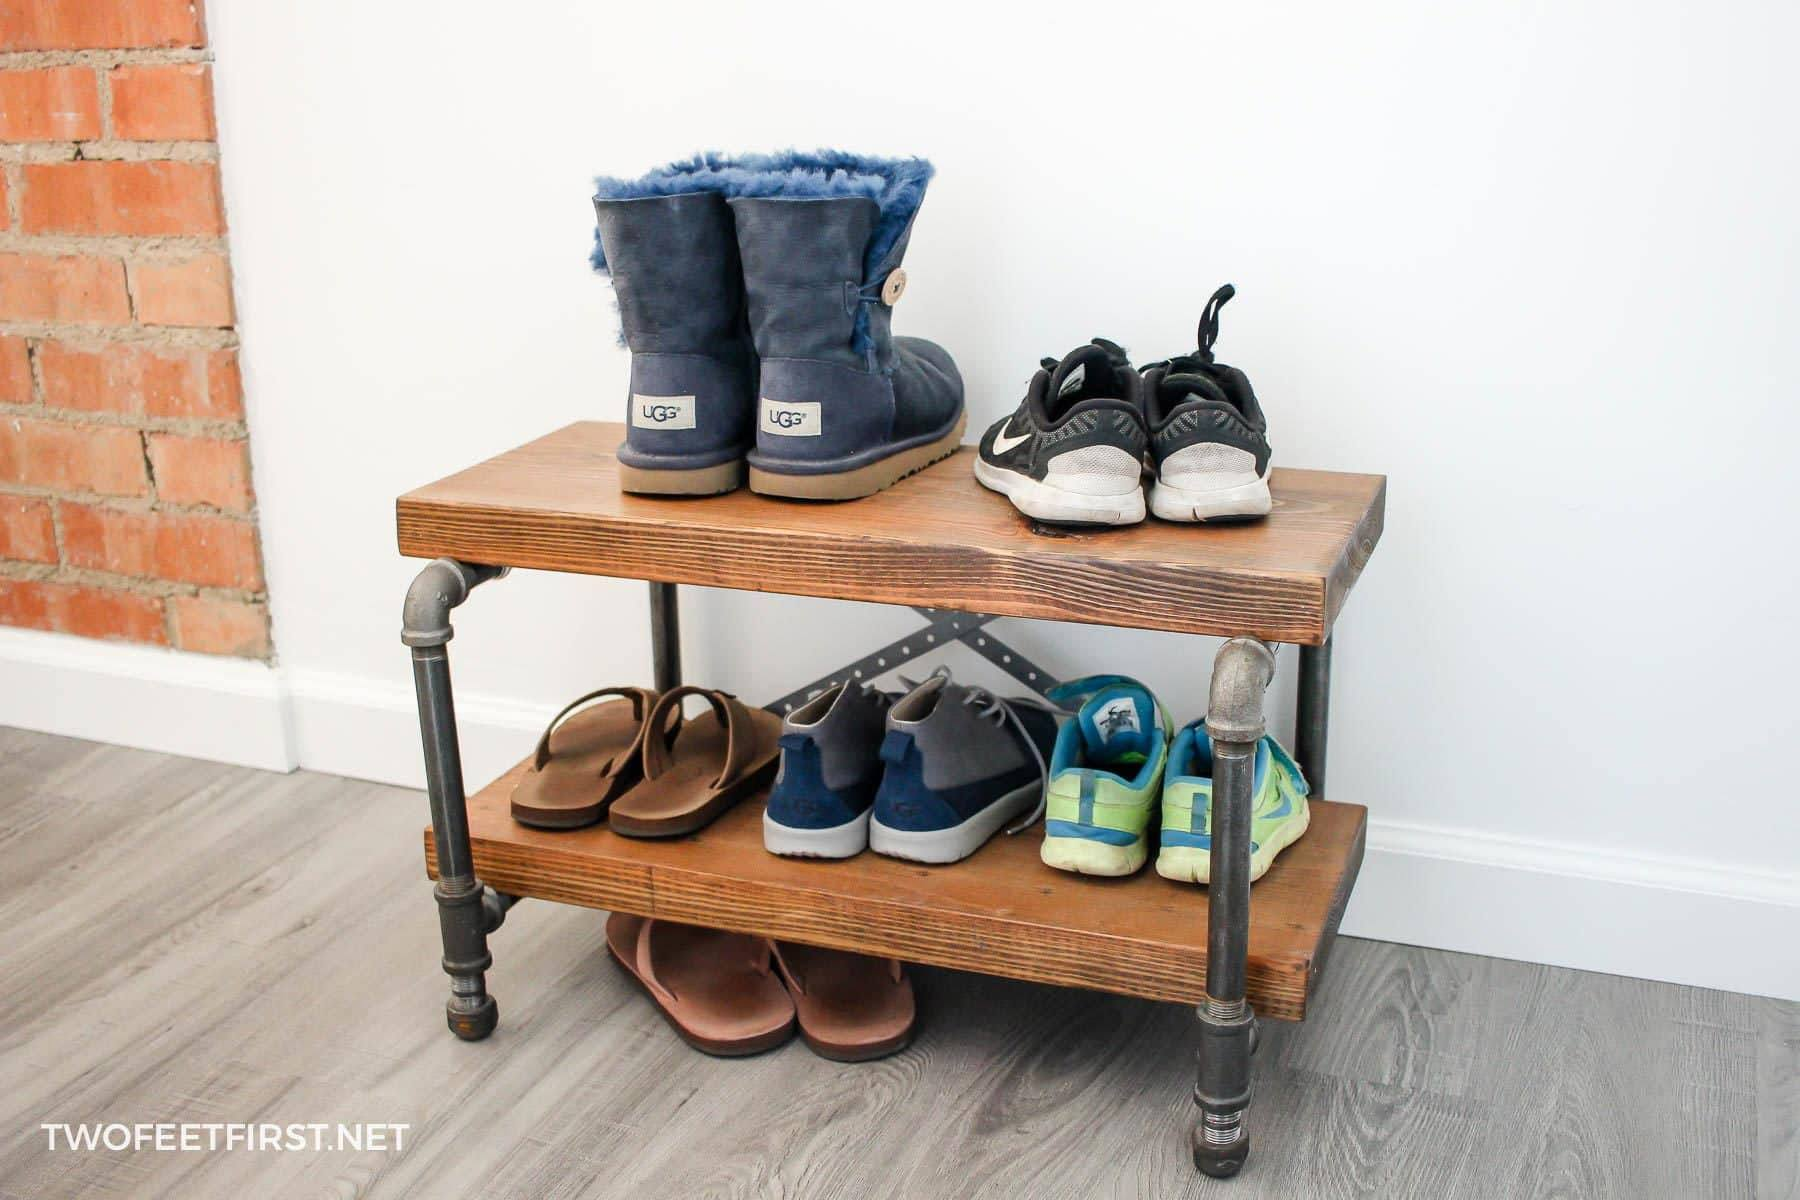 A wooden and metal shoe rack